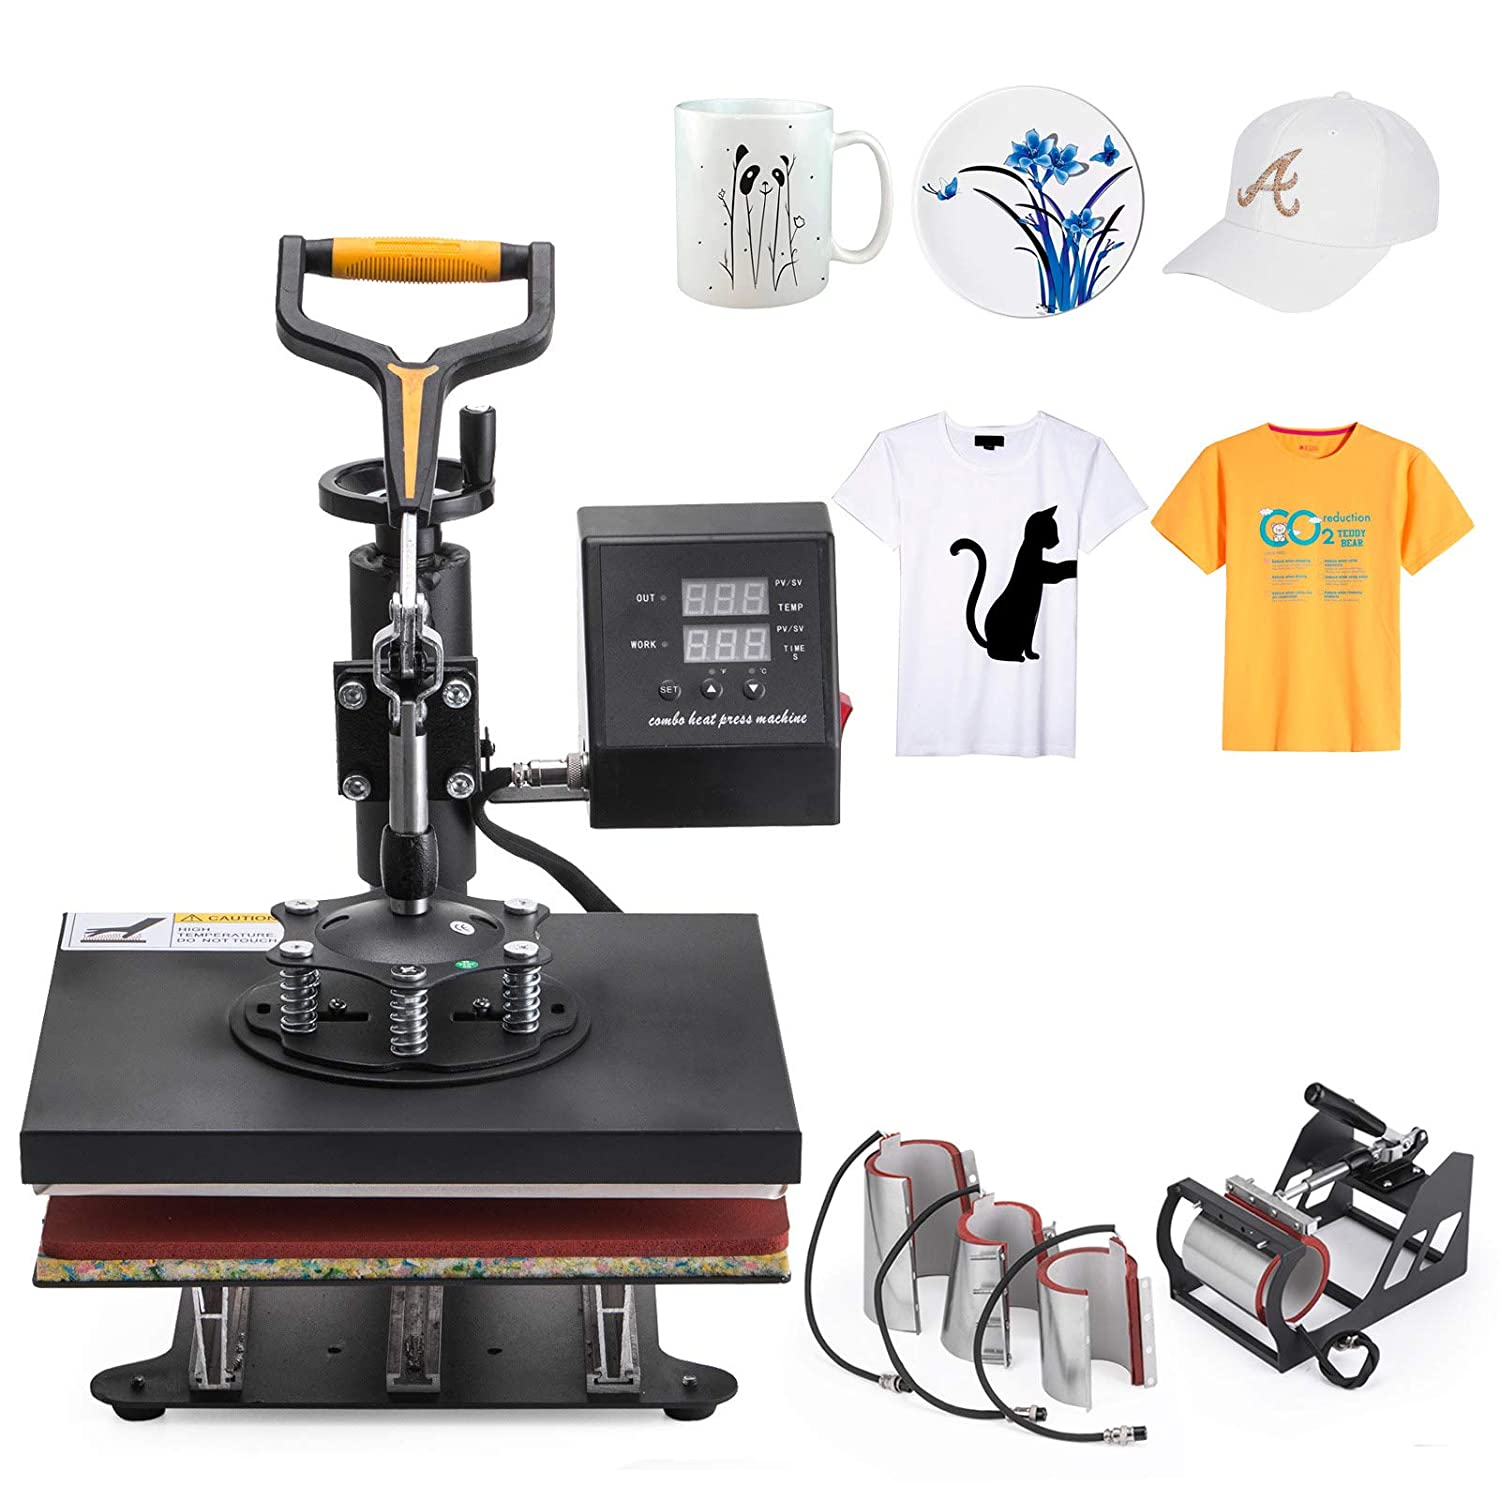 Happybuy 8in1 Heat Press 12x10 Inch Combo Heat Press Printer Swing Away Multifunction Heat Press Machine for T-Shirt Mug Hat Plate Cap Happibuy